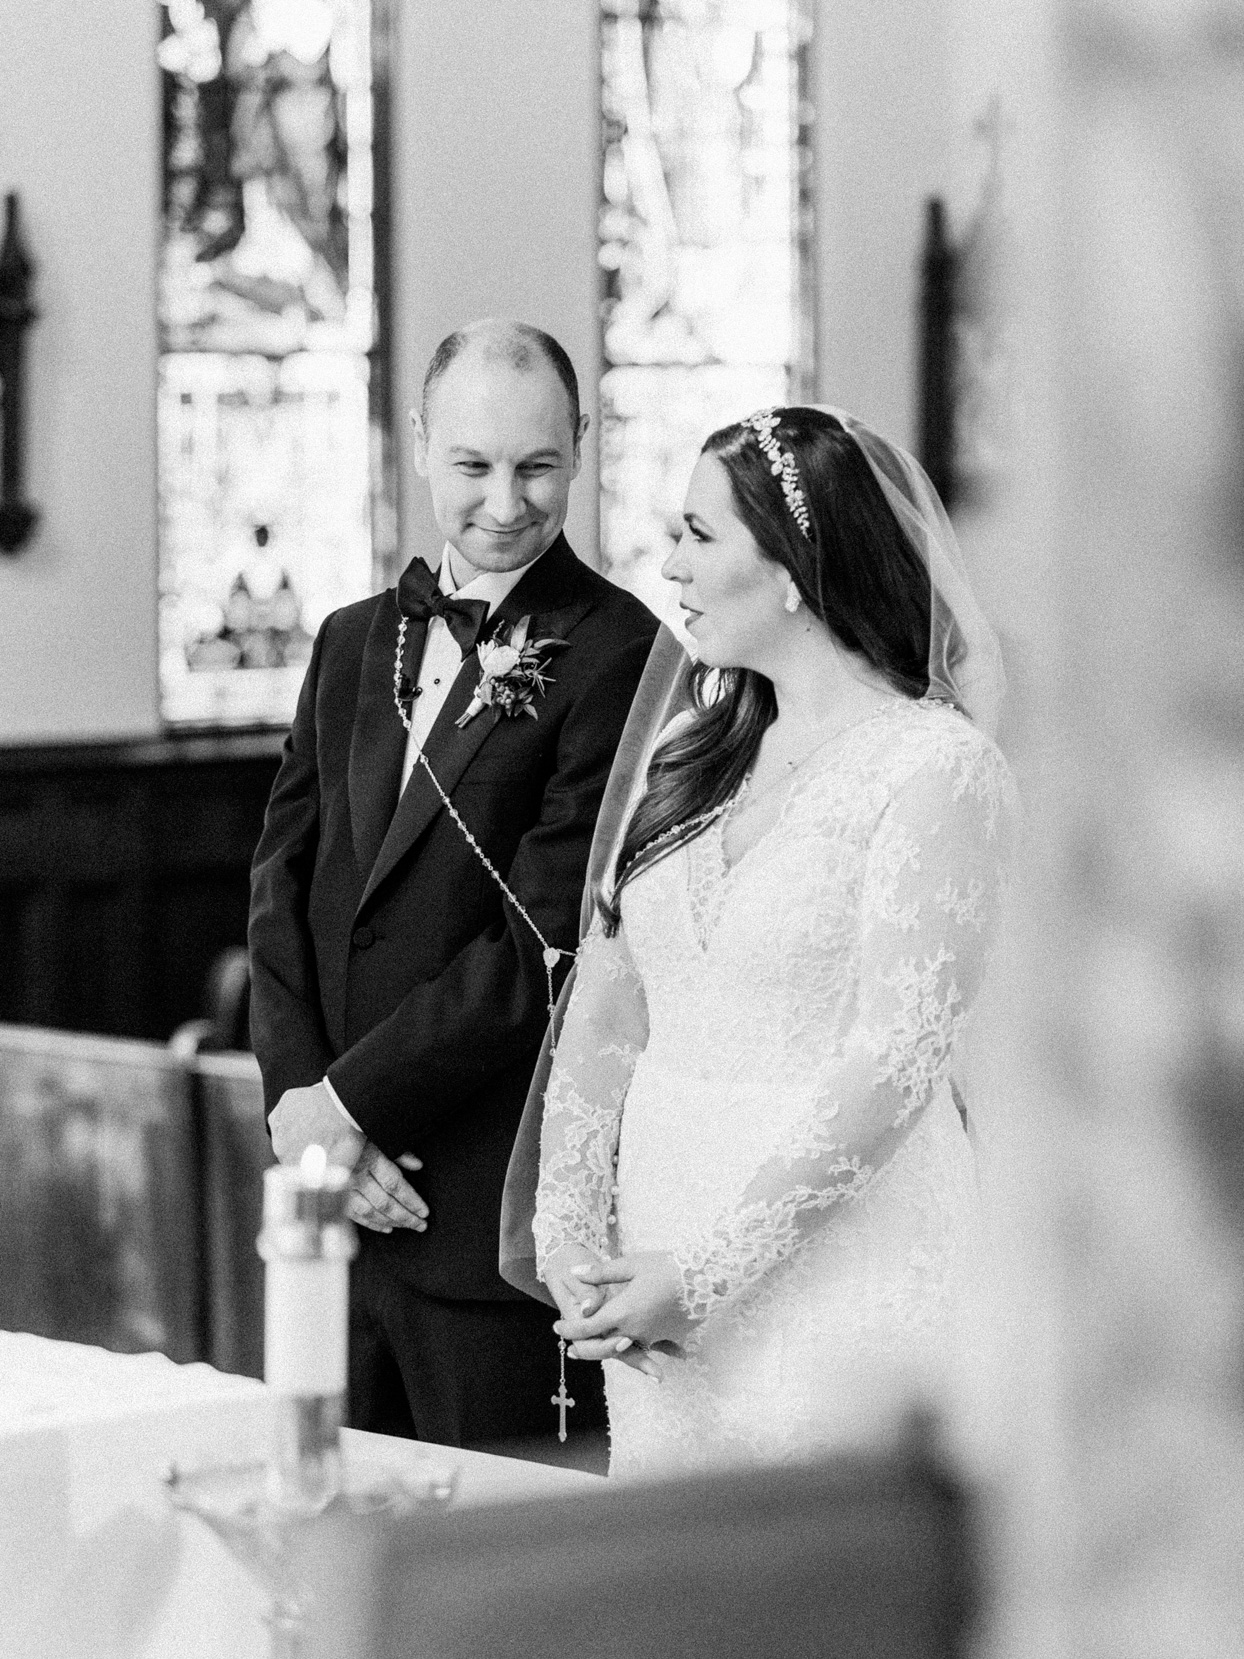 wedding couple smiling at each other during church ceremony